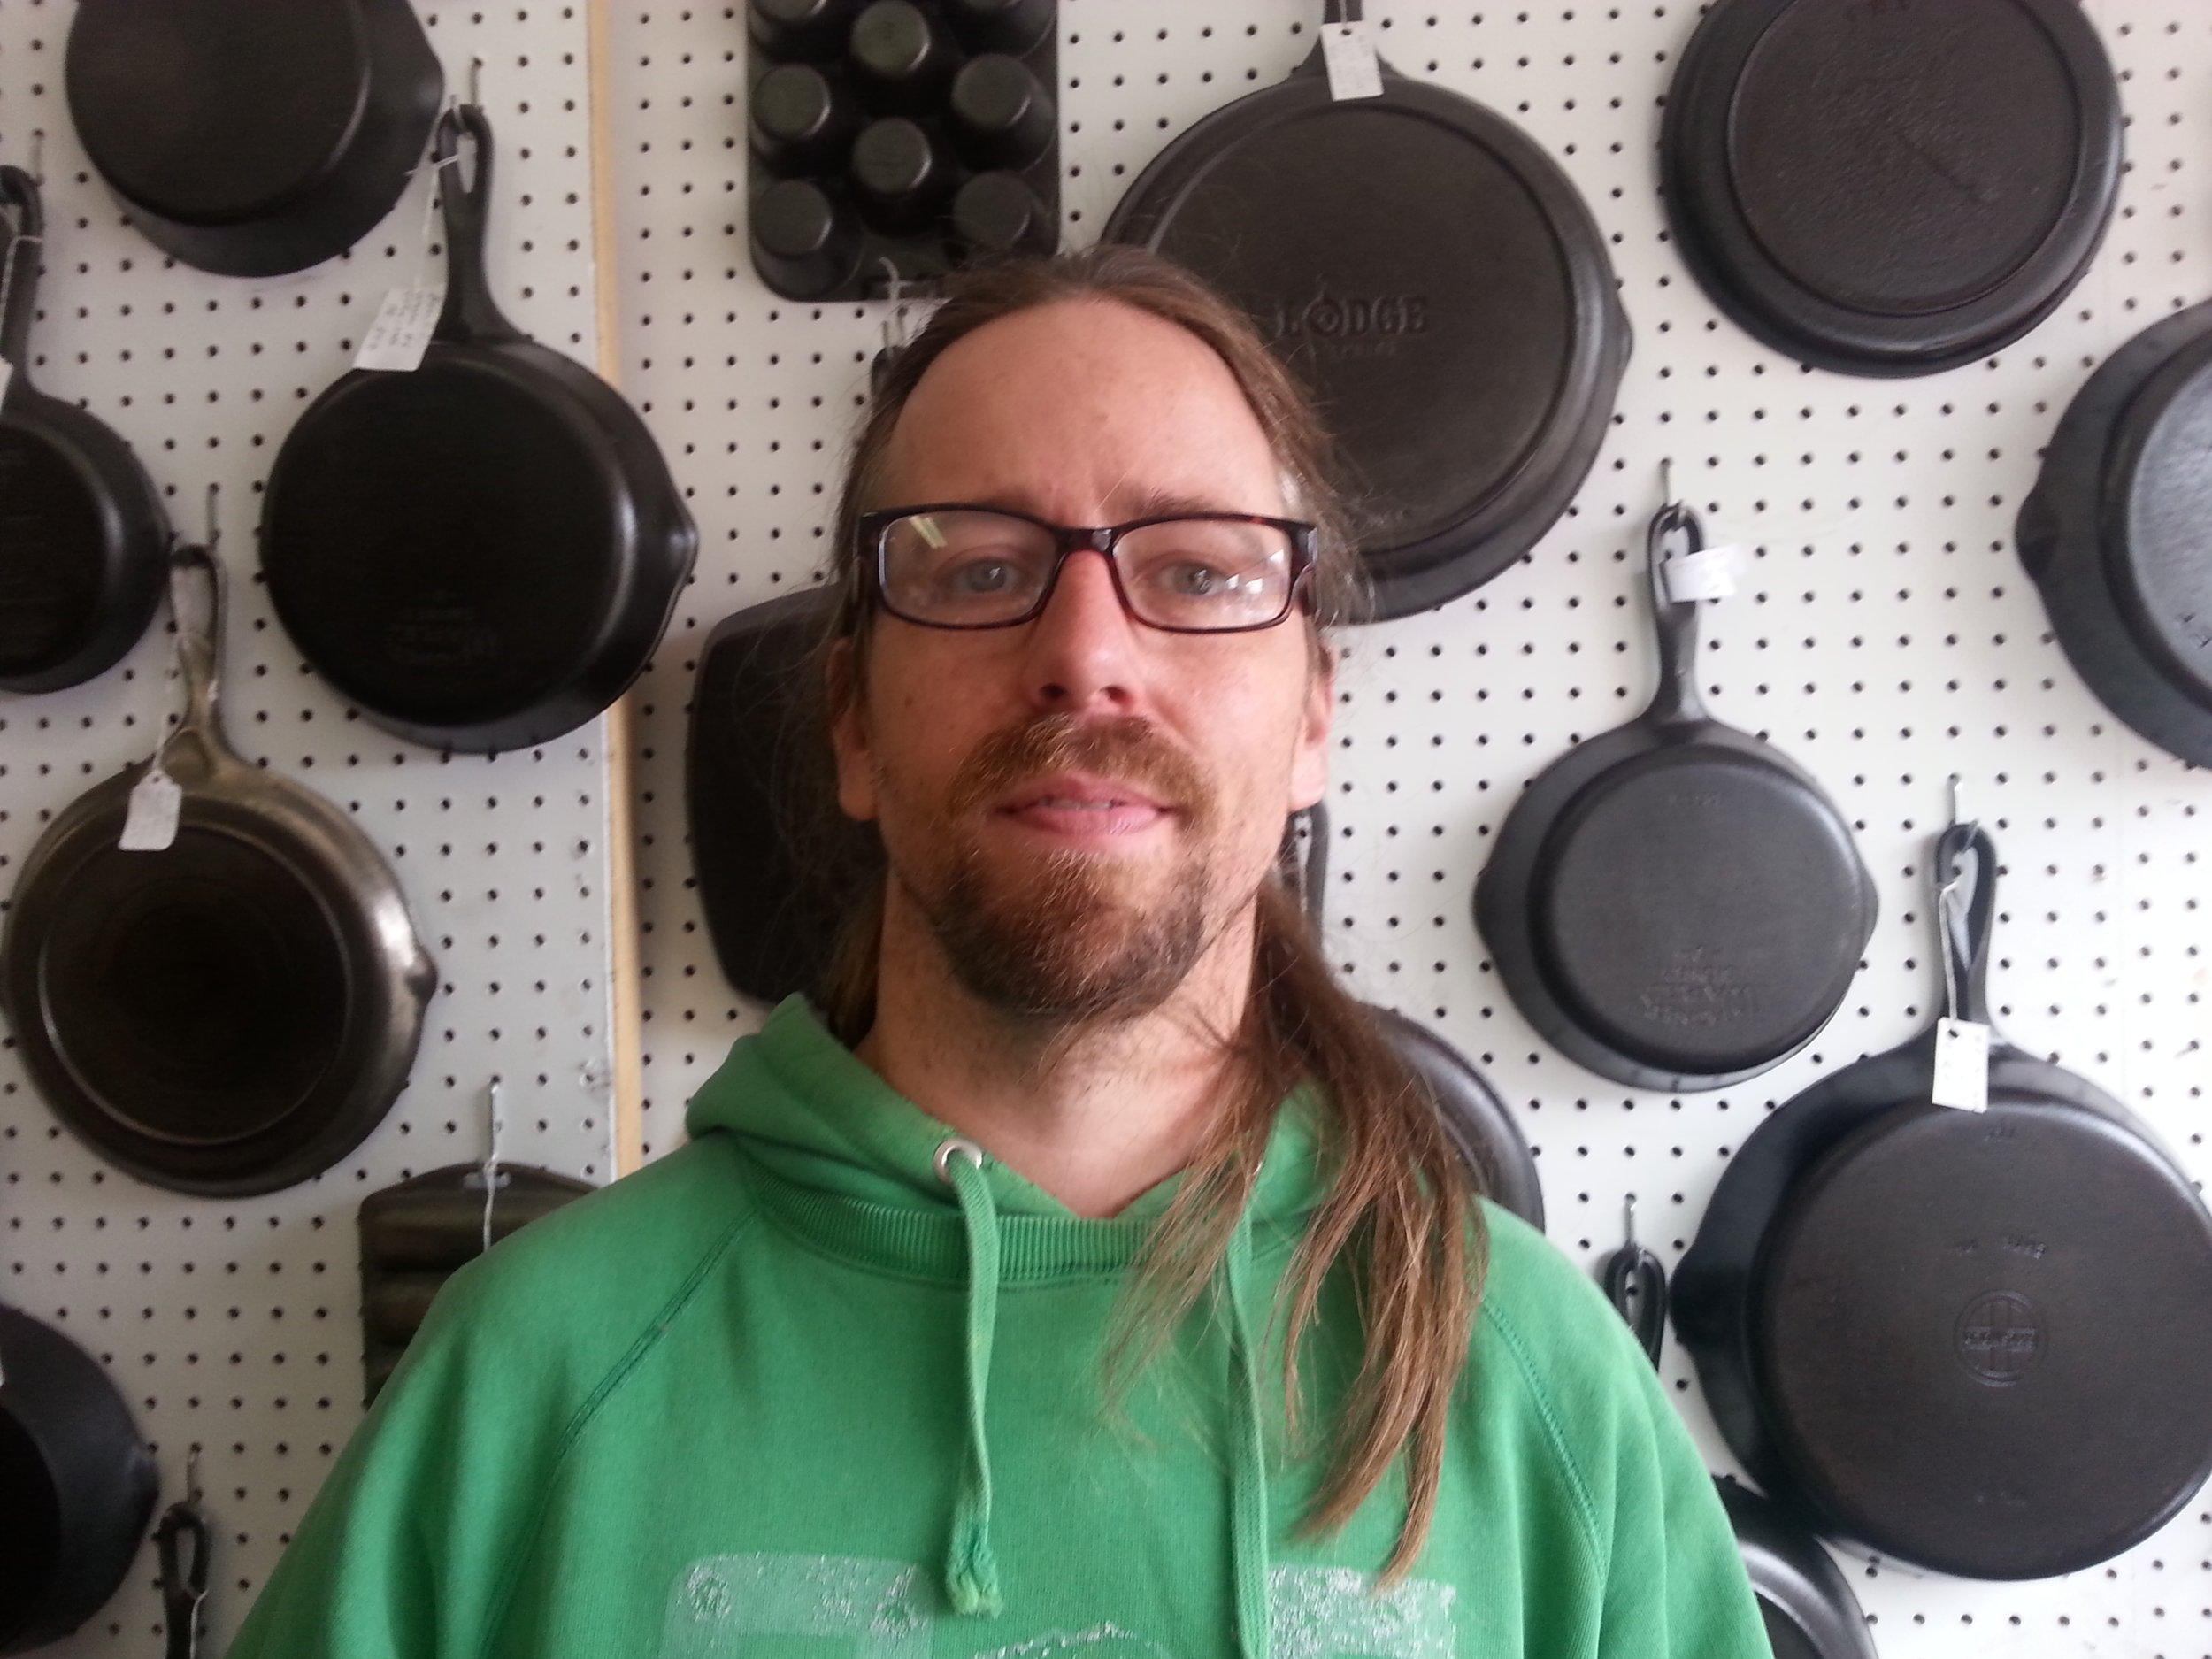 - Phil keeps the shop full of cast iron. All of his skillets are cleaned and they are ready to use. Phil also carries a lot of sports items, toys, and